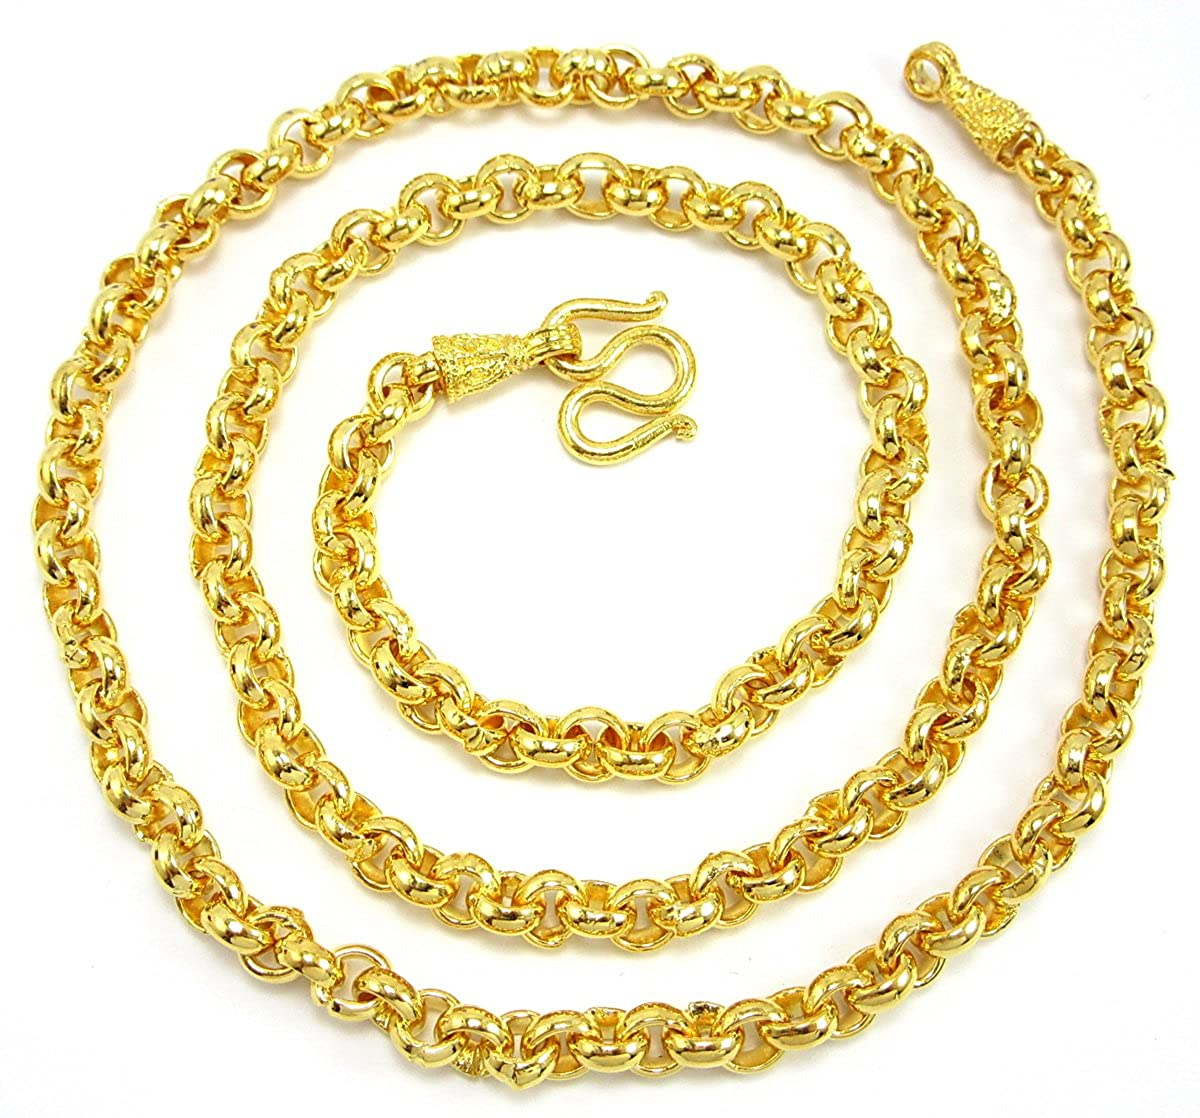 "Bangkok Bazaar Classy Thai Classic Design 25"" Men Baht Chain Jewelry 24k Gold Plated Necklace Thailand"